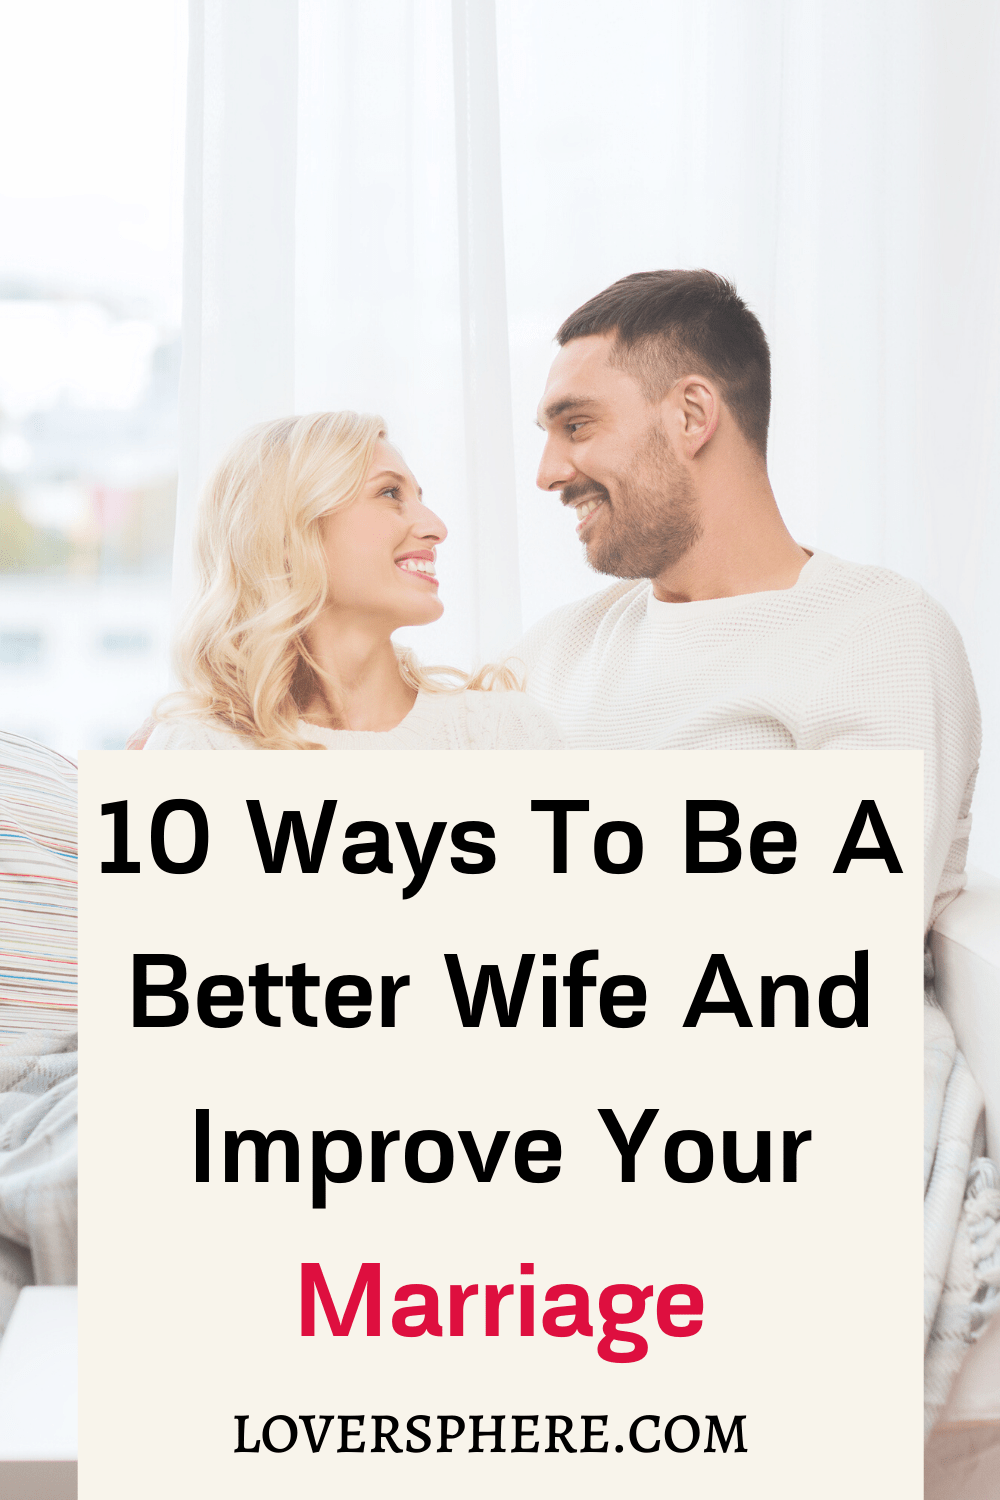 How To Be A Better Wife And Improve Your Marriage